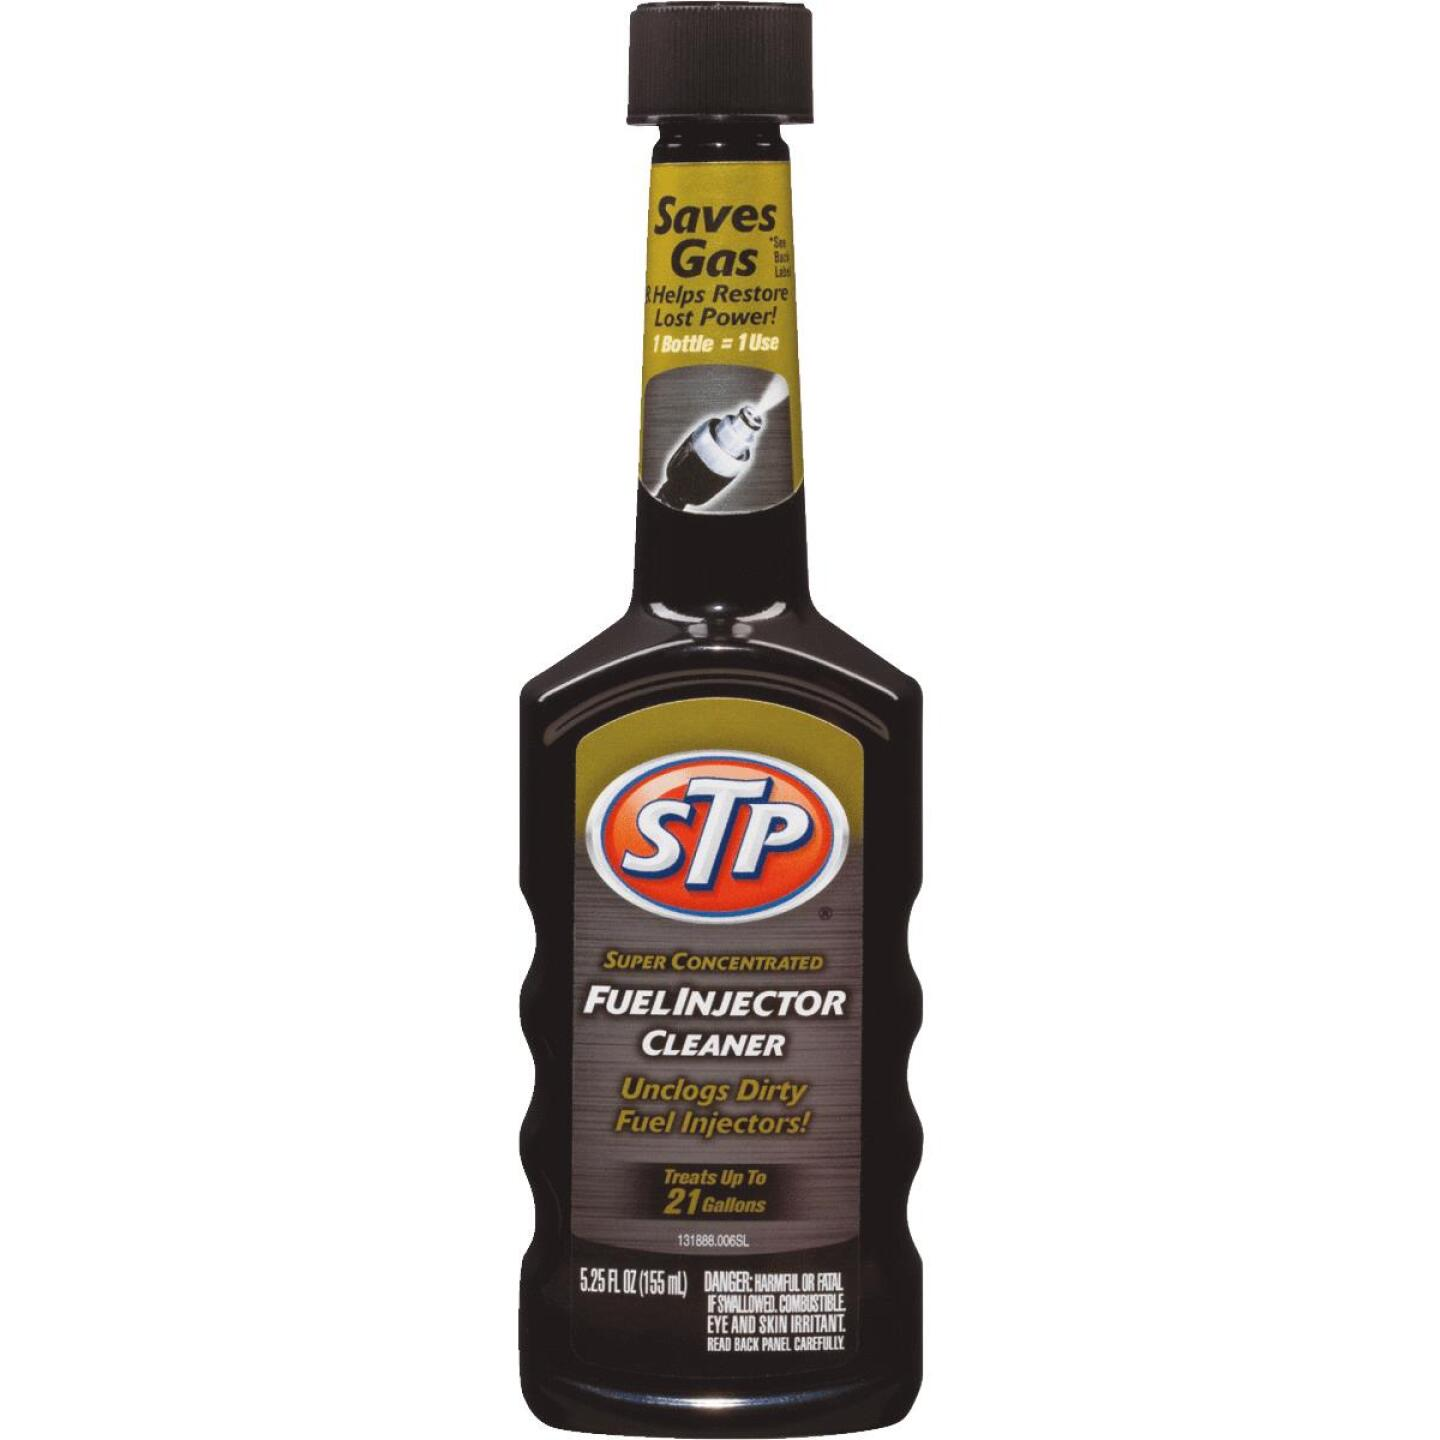 STP 5.25 Fl. Oz. Fuel Injector Fuel System Cleaner Image 1